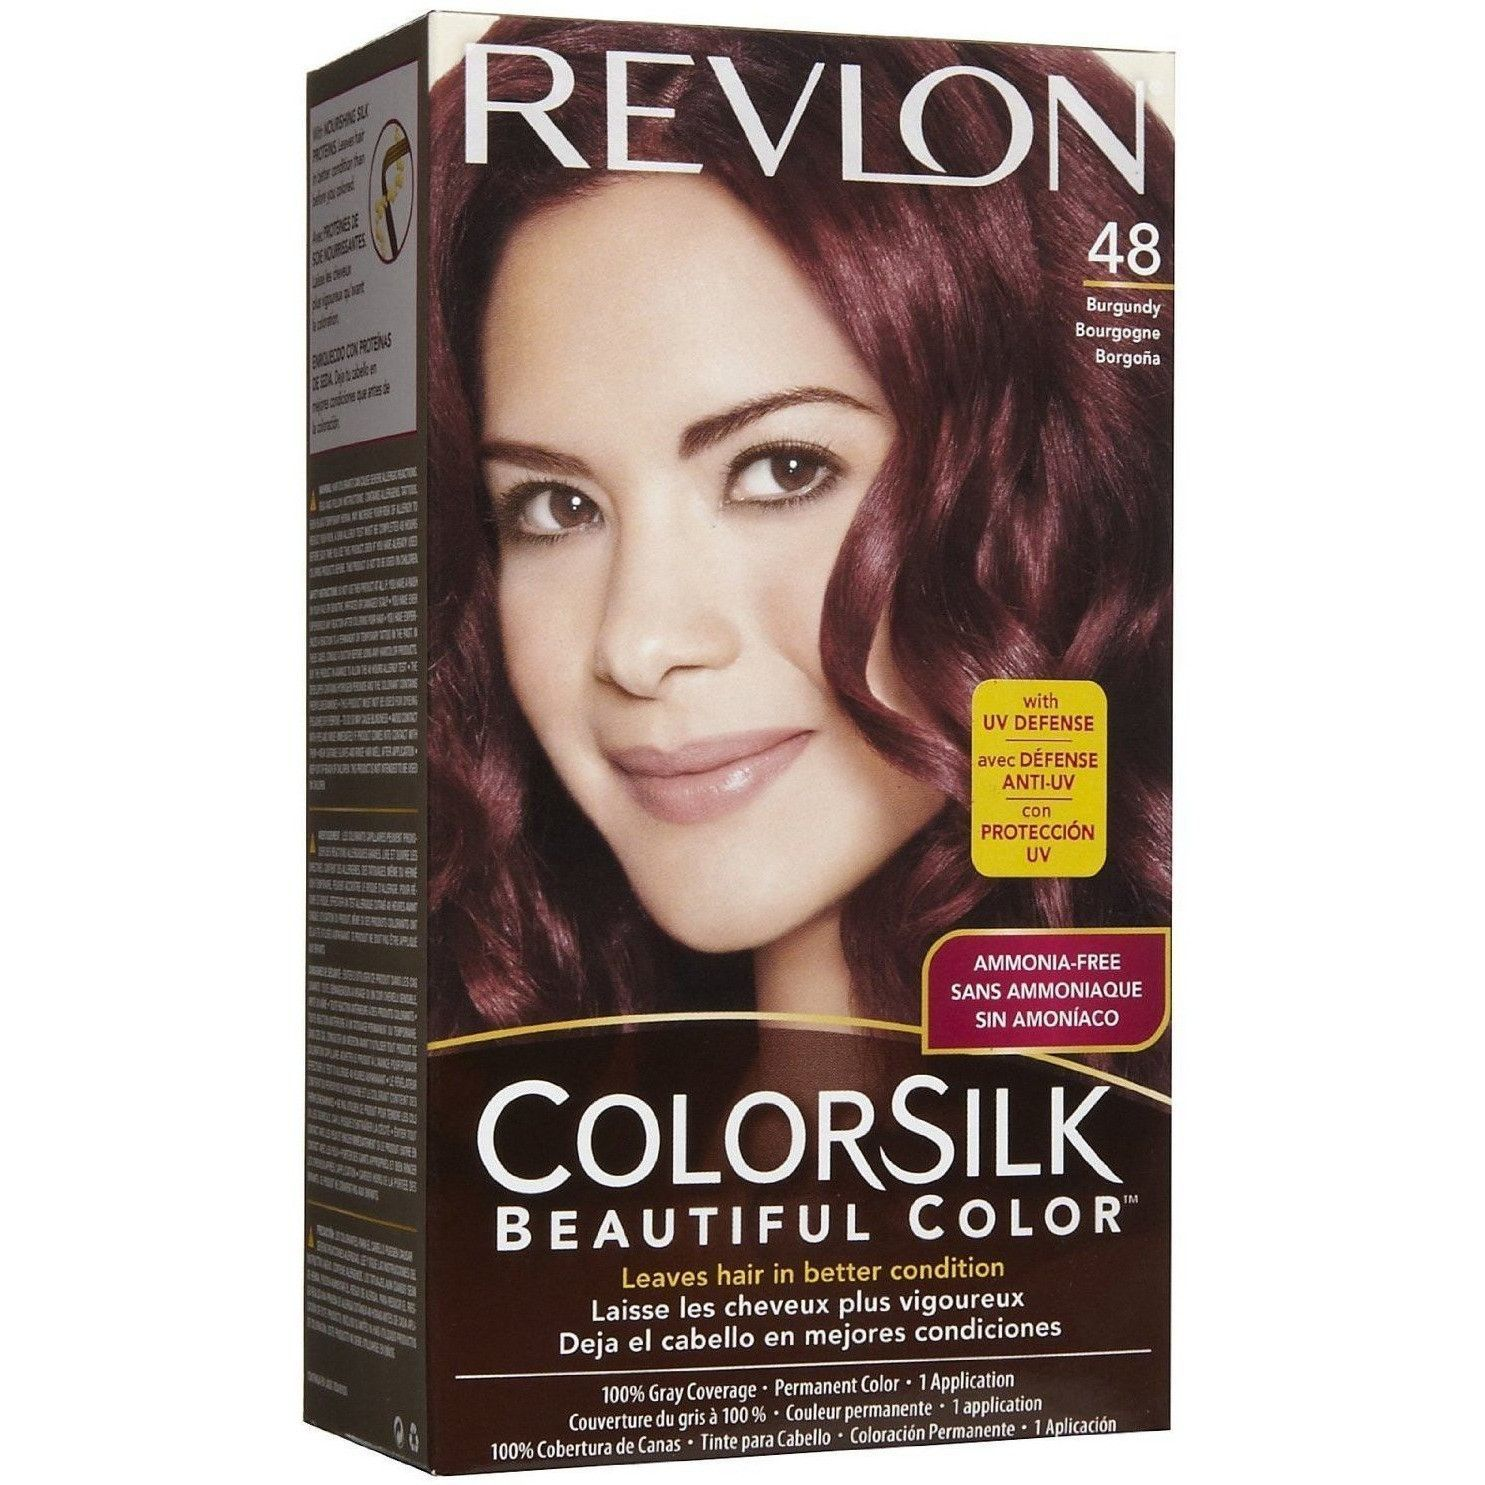 Revlon Colorsilk Beautiful Color Ammonia-free Permanent Haircolor ...